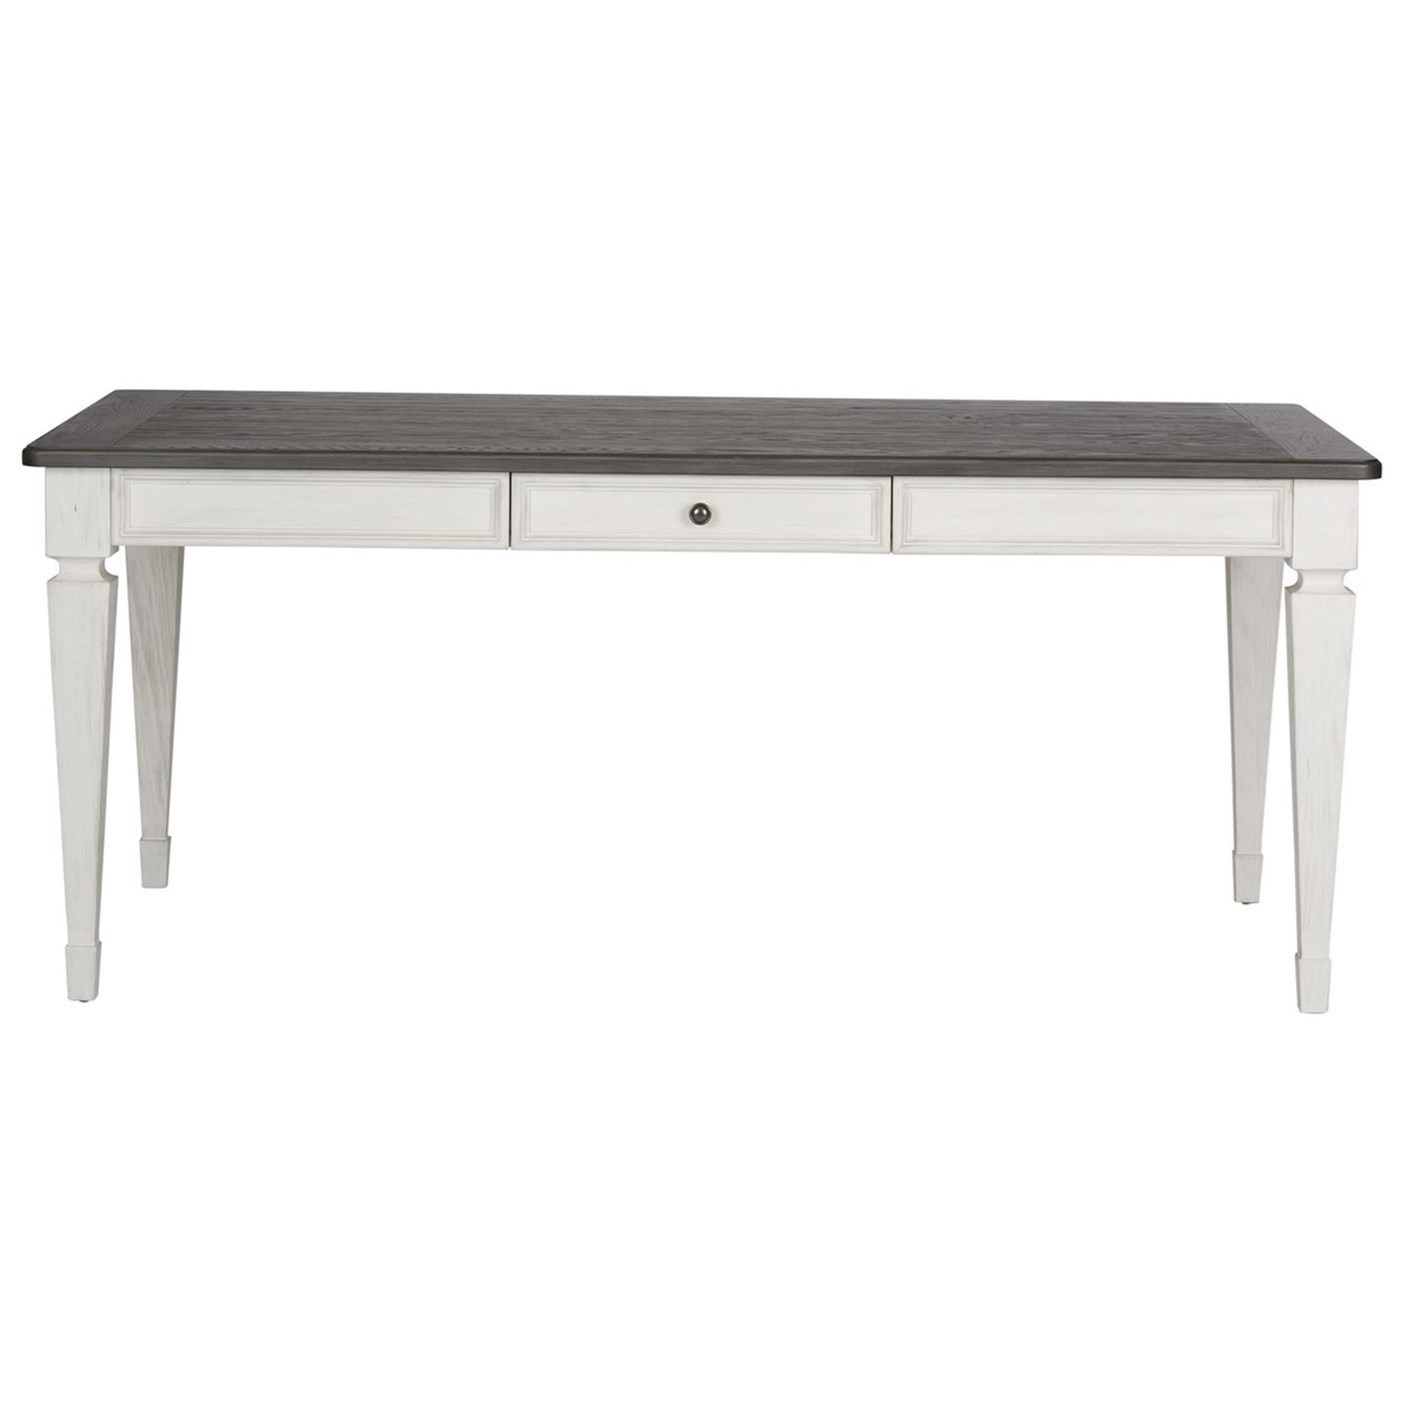 Allyson Park 4 Drawer Rectangular Leg Table by Liberty Furniture at Darvin Furniture